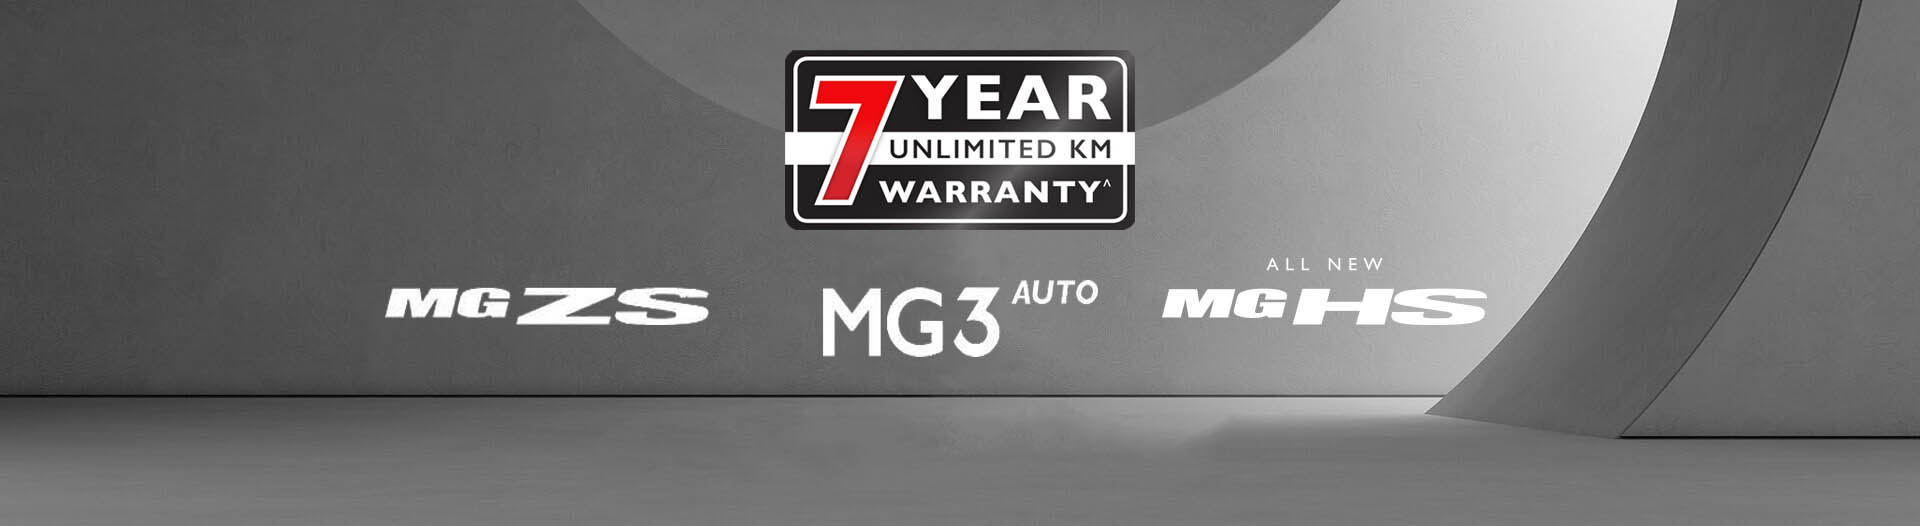 mg-new-warranty-banner